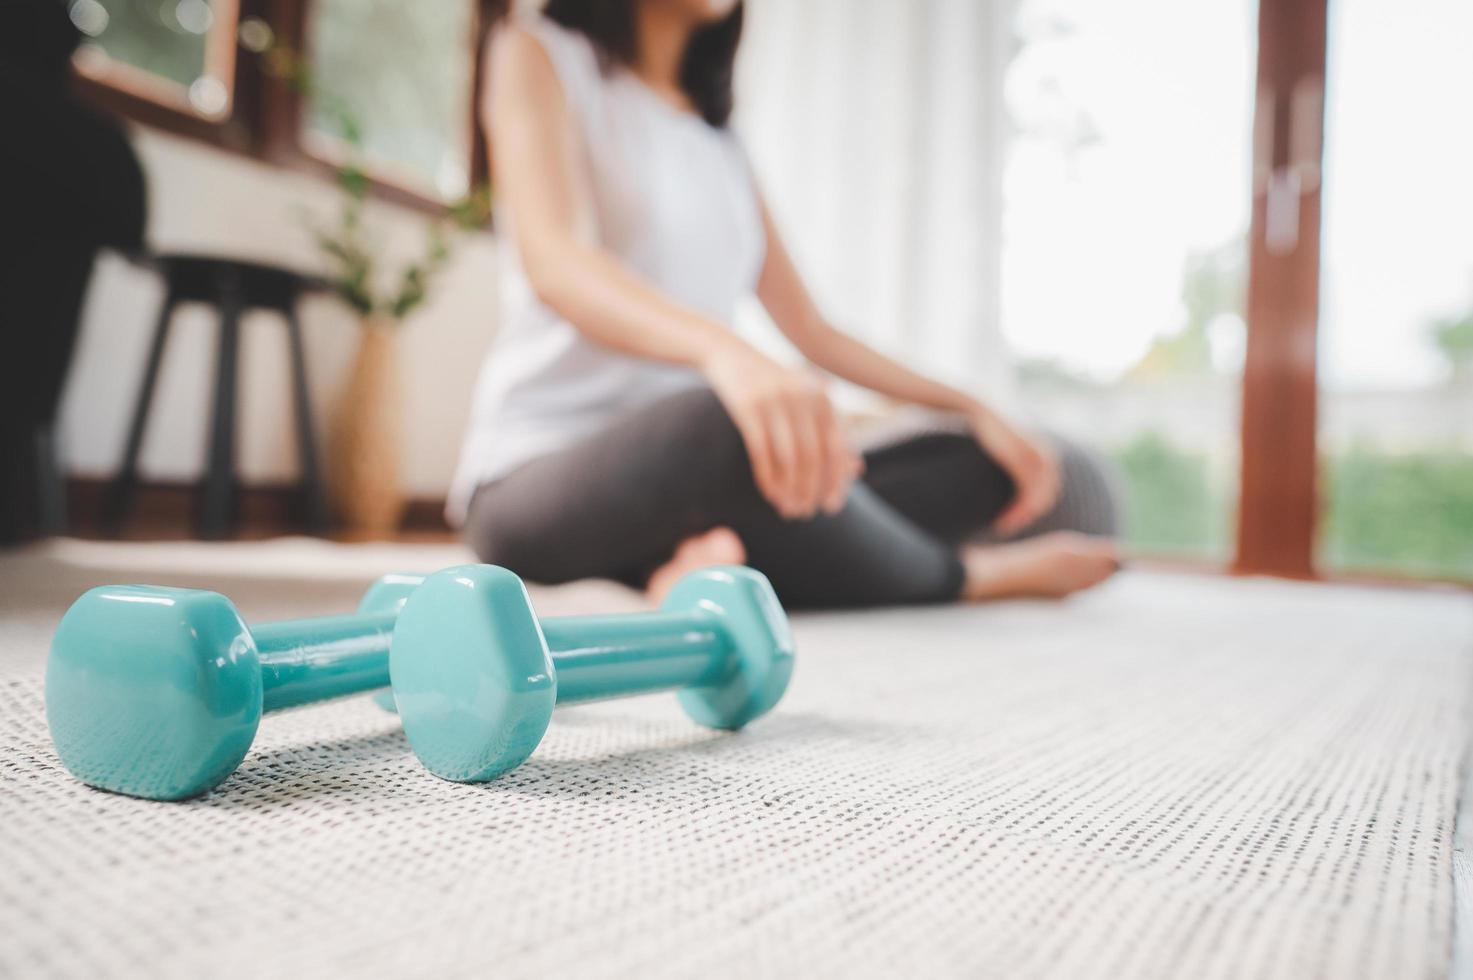 Pair of dumbbells on the living room floor photo